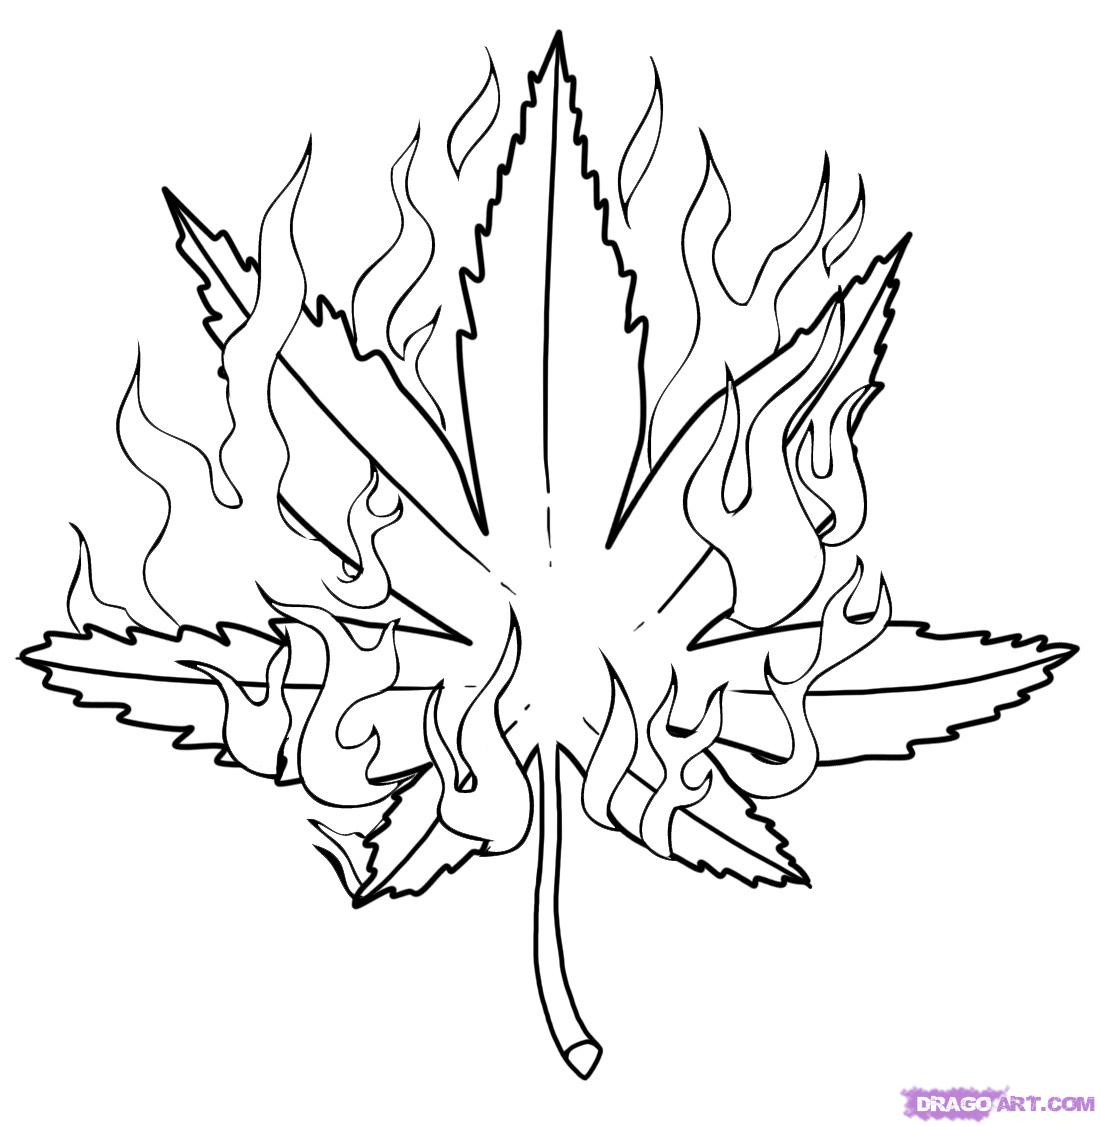 how to draw a weed leaf the best free cannabis coloring page images download from to how a leaf draw weed